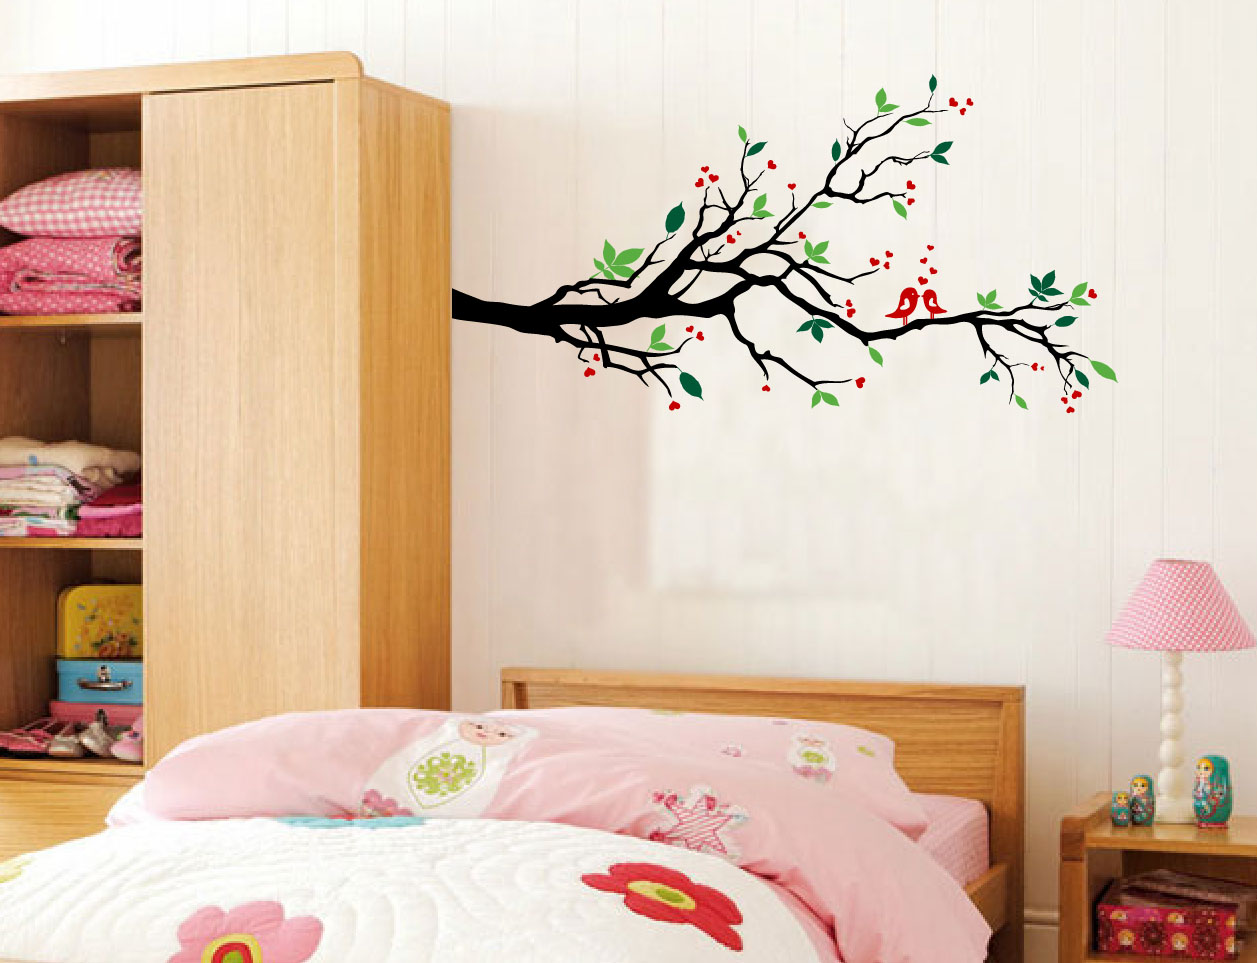 love-birds-branch-tree-wall-decal.jpg